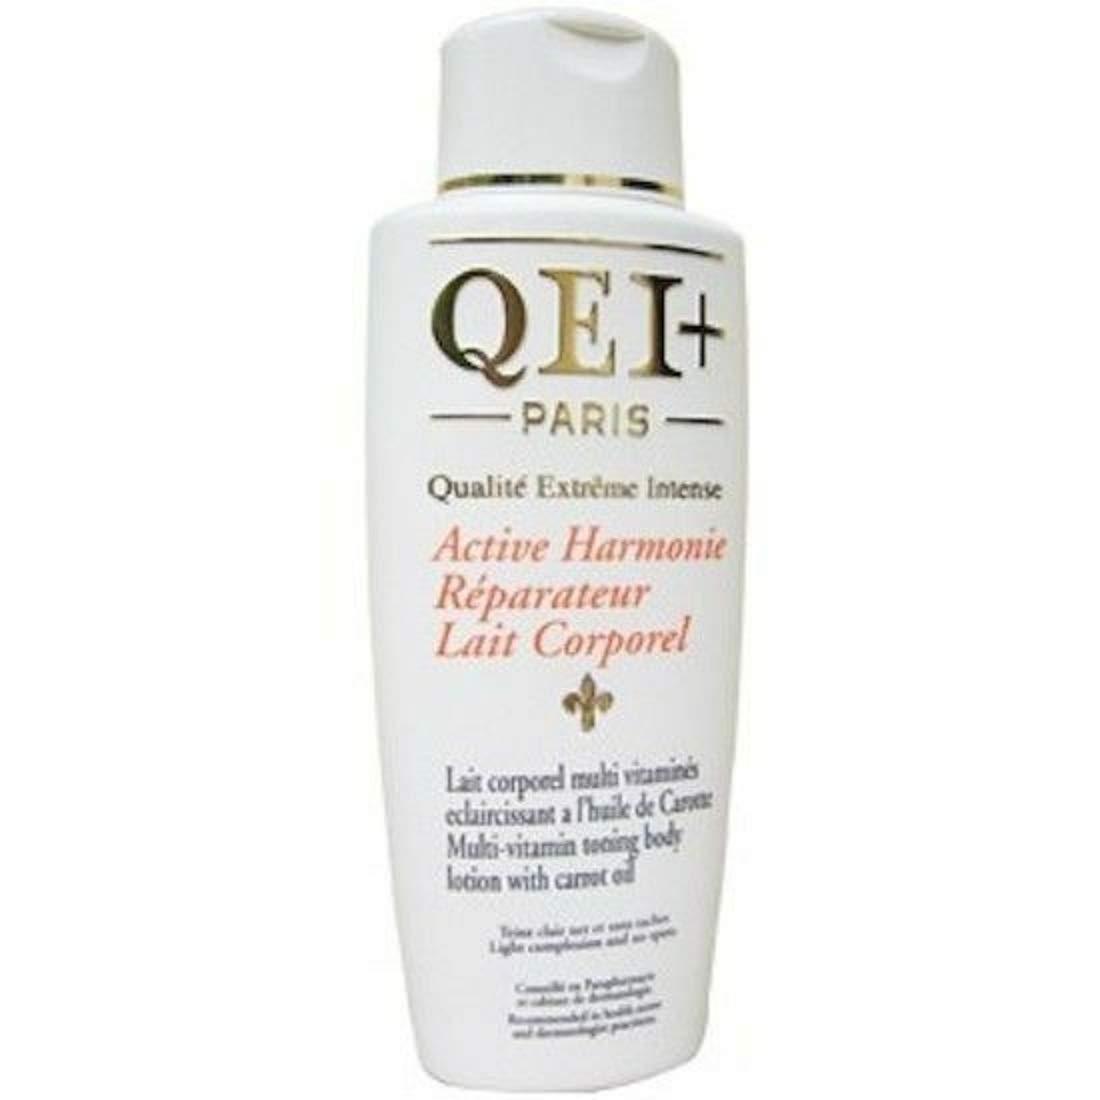 Qei+ Paris Active Harmonie Multi Vitamin Toning Body Lotion With Carrot Oil